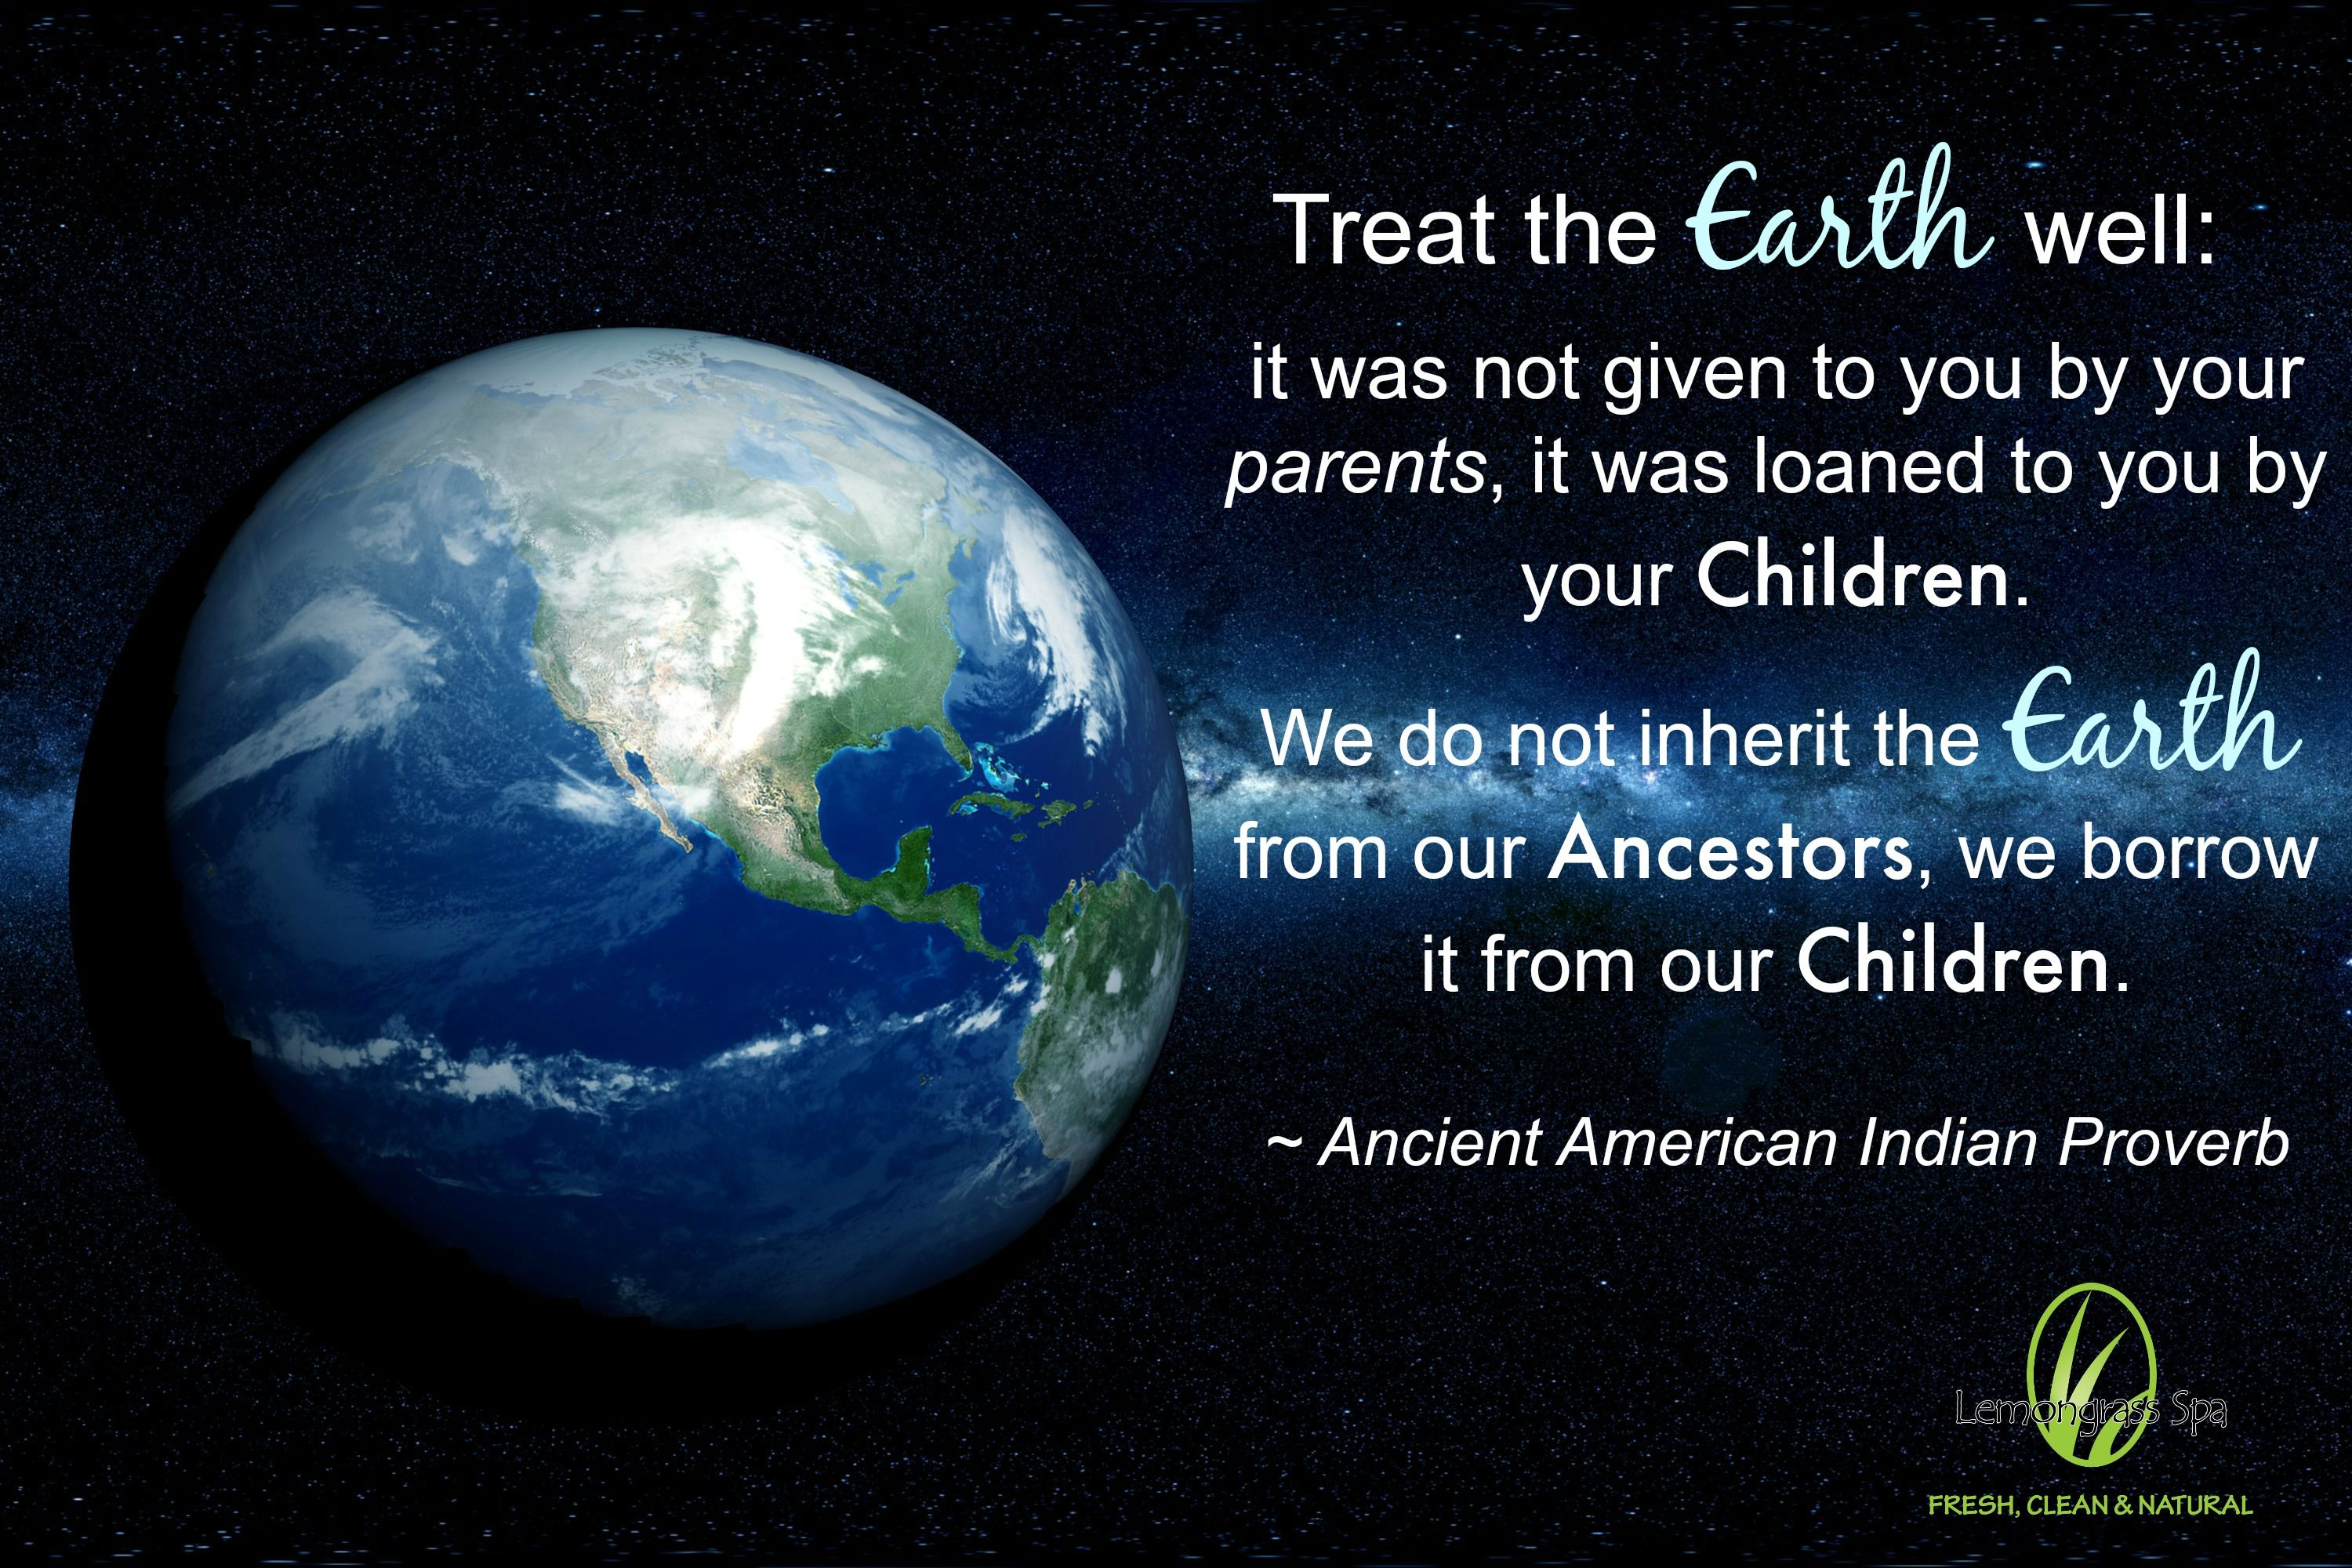 Treat the earth well inspirational quote…Earth Day 2015